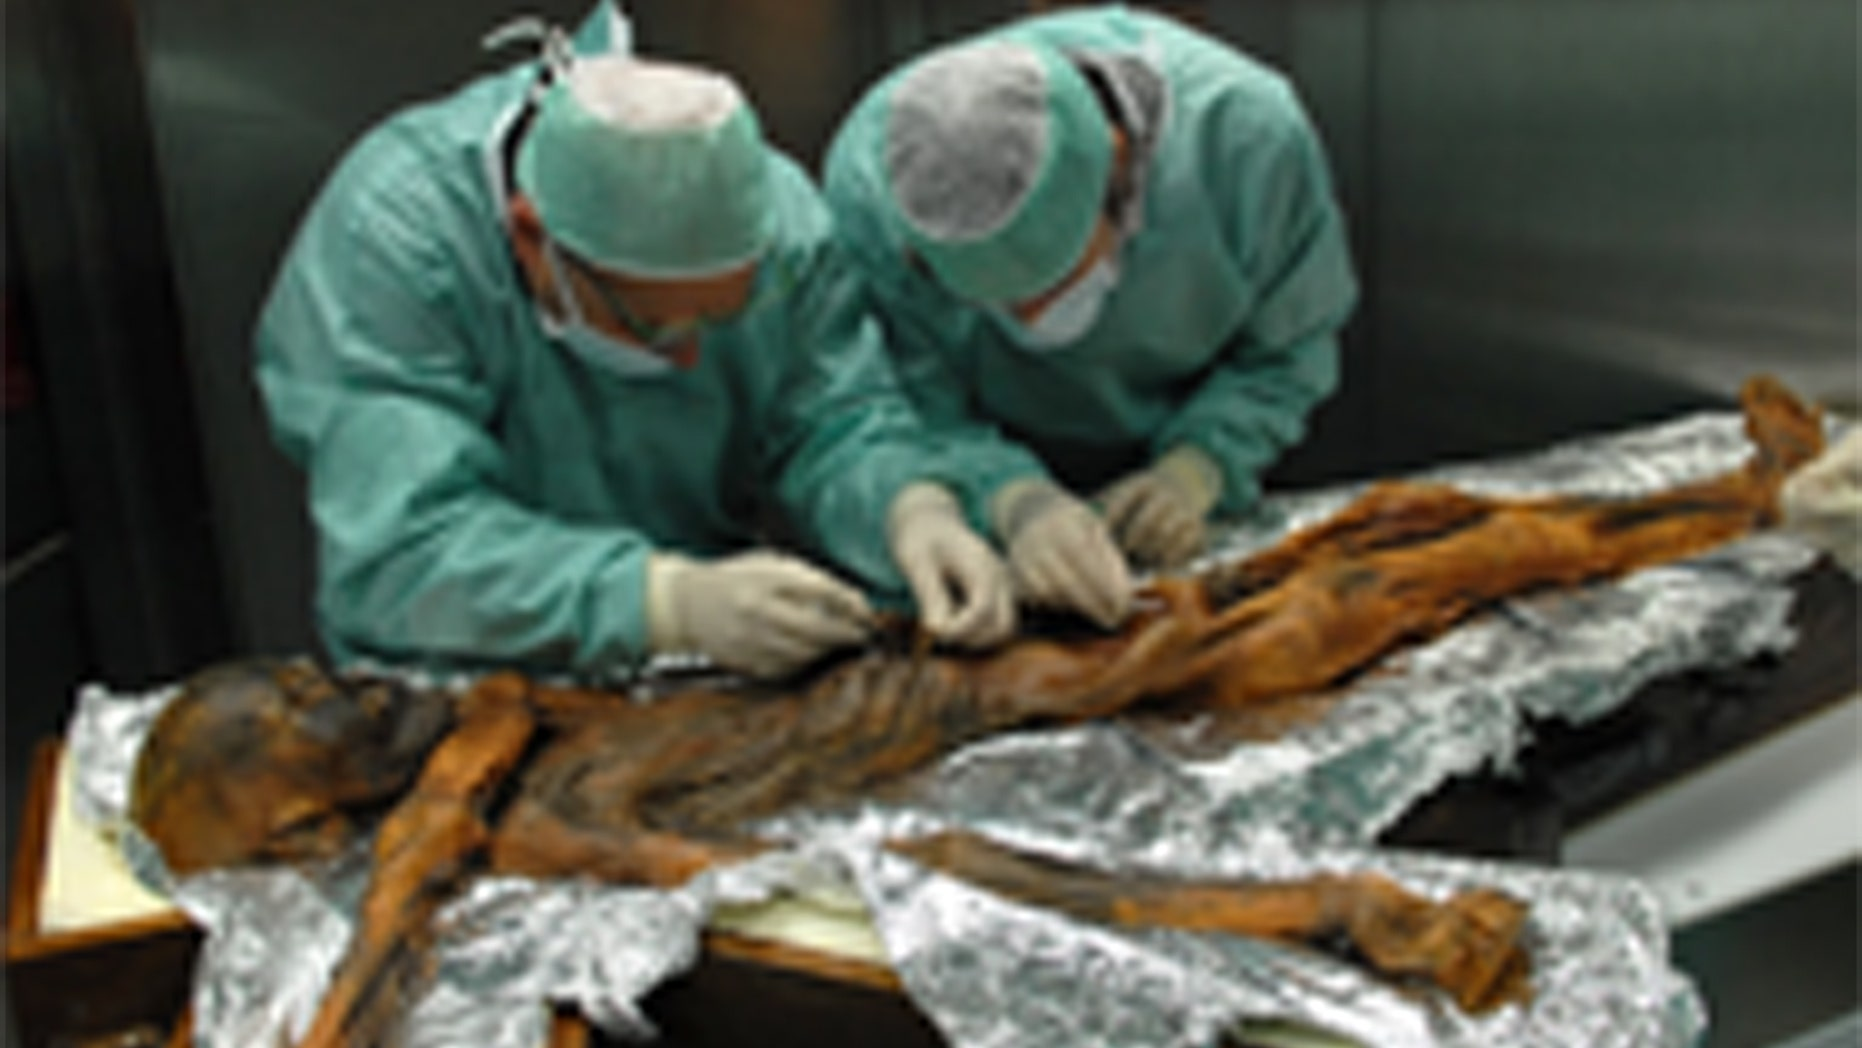 Scientists take samples from Ötzi's stomach during an exam in Bolzano, Italy, in November 2010. Credit: South Tyrol Museum of ArchaeologyEuracM. Samadelli